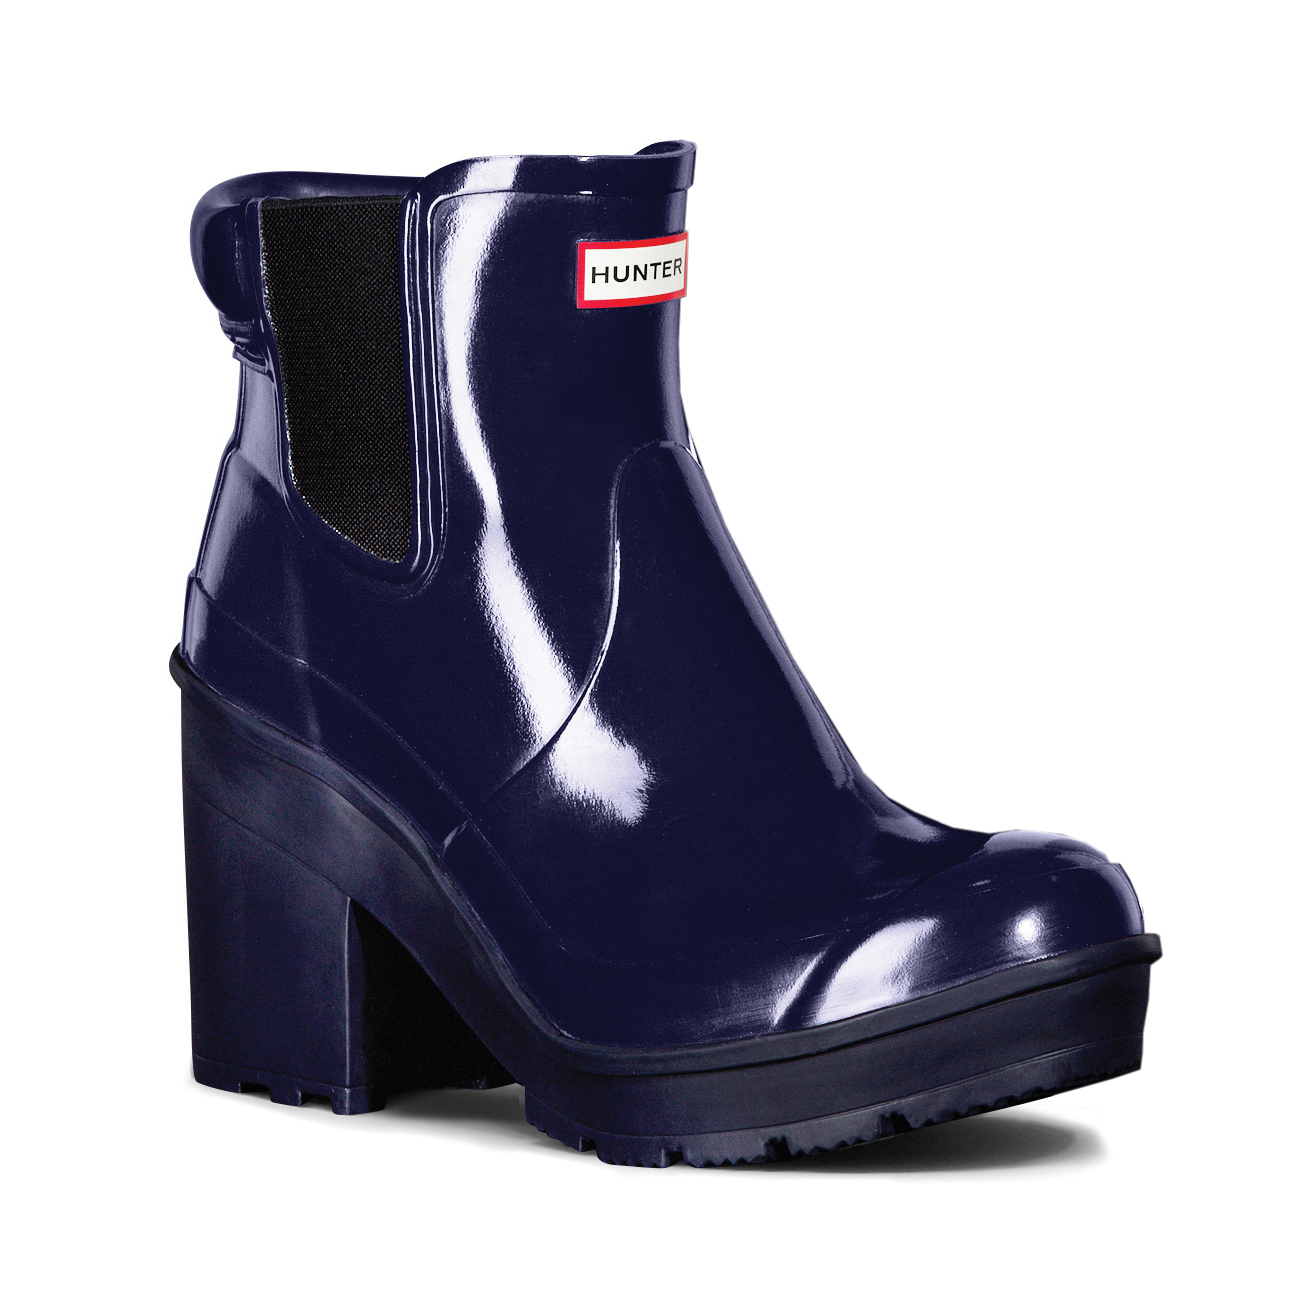 Model Our Favourite Ones Barely Resemble Traditional Rain Gear Some Can Even Pass As Regular Footwear, And Show Off Seasonal Prints, Minimalist Designs And Sturdy Heels Perfect For Puddle Stomping Here, 10 Of Springs Best Boots That Will Keep